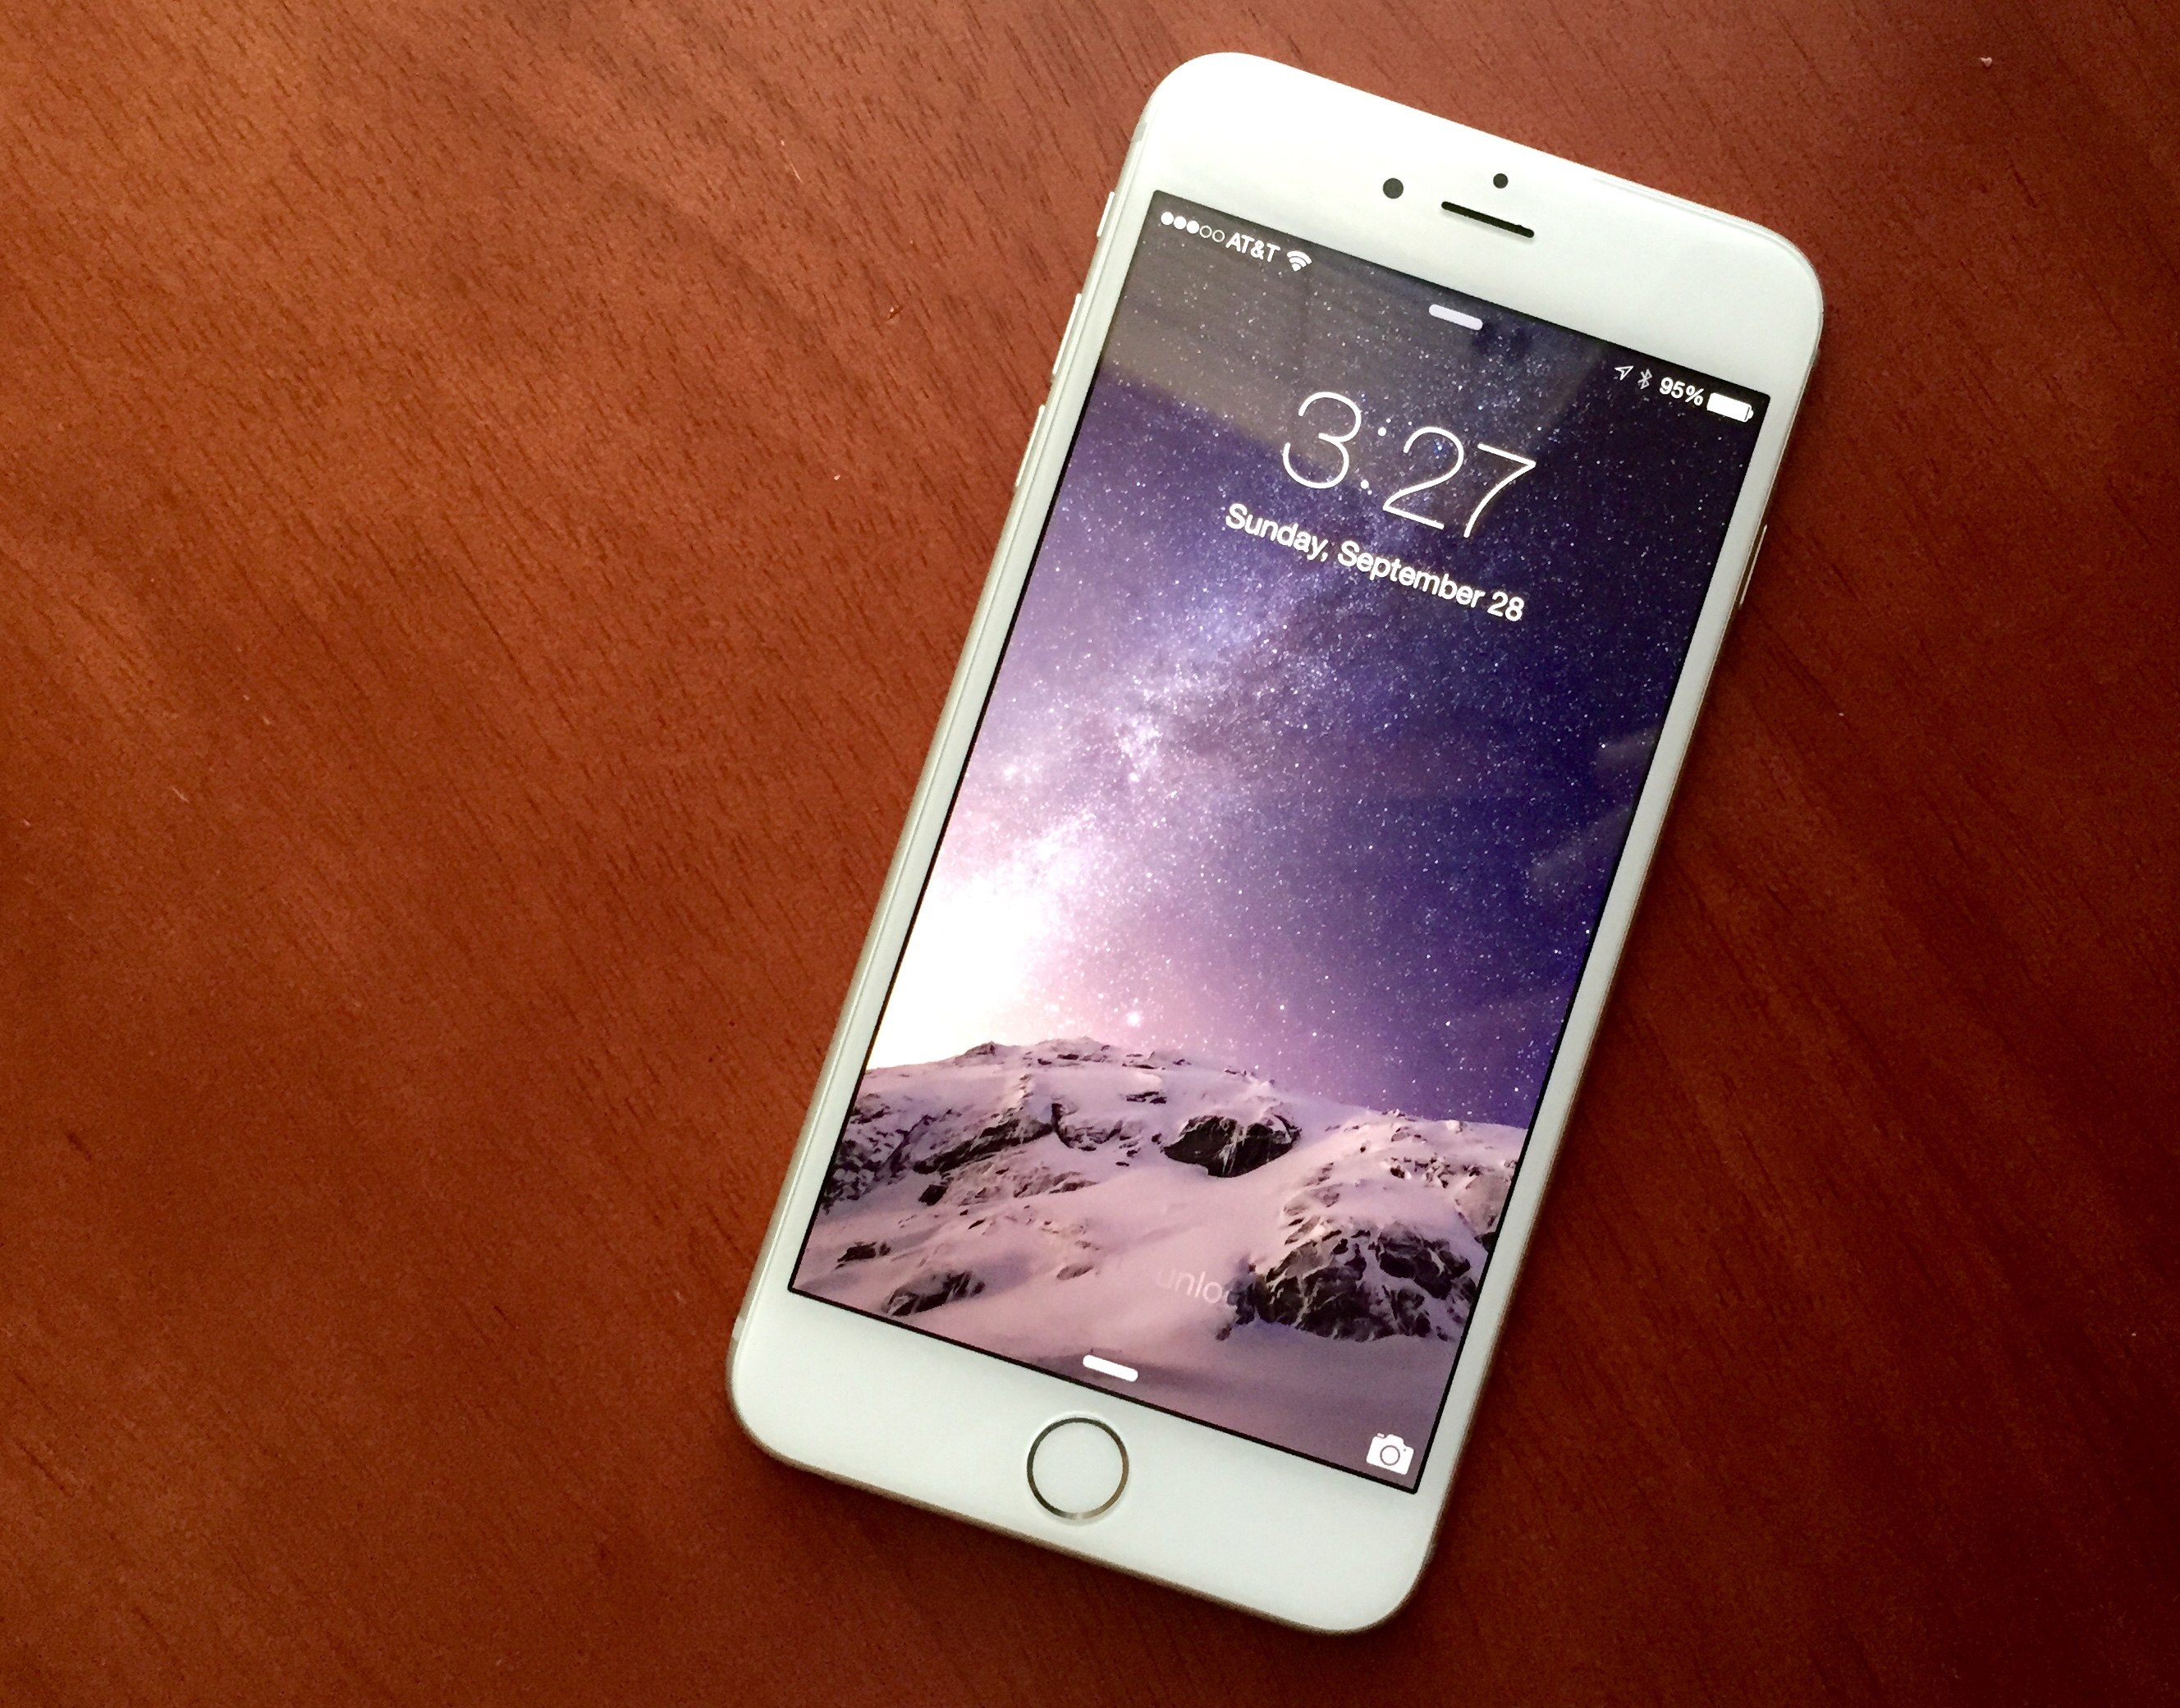 Here's a look at the iOS 8.0.2 performance on the iPhone 6 Plus.